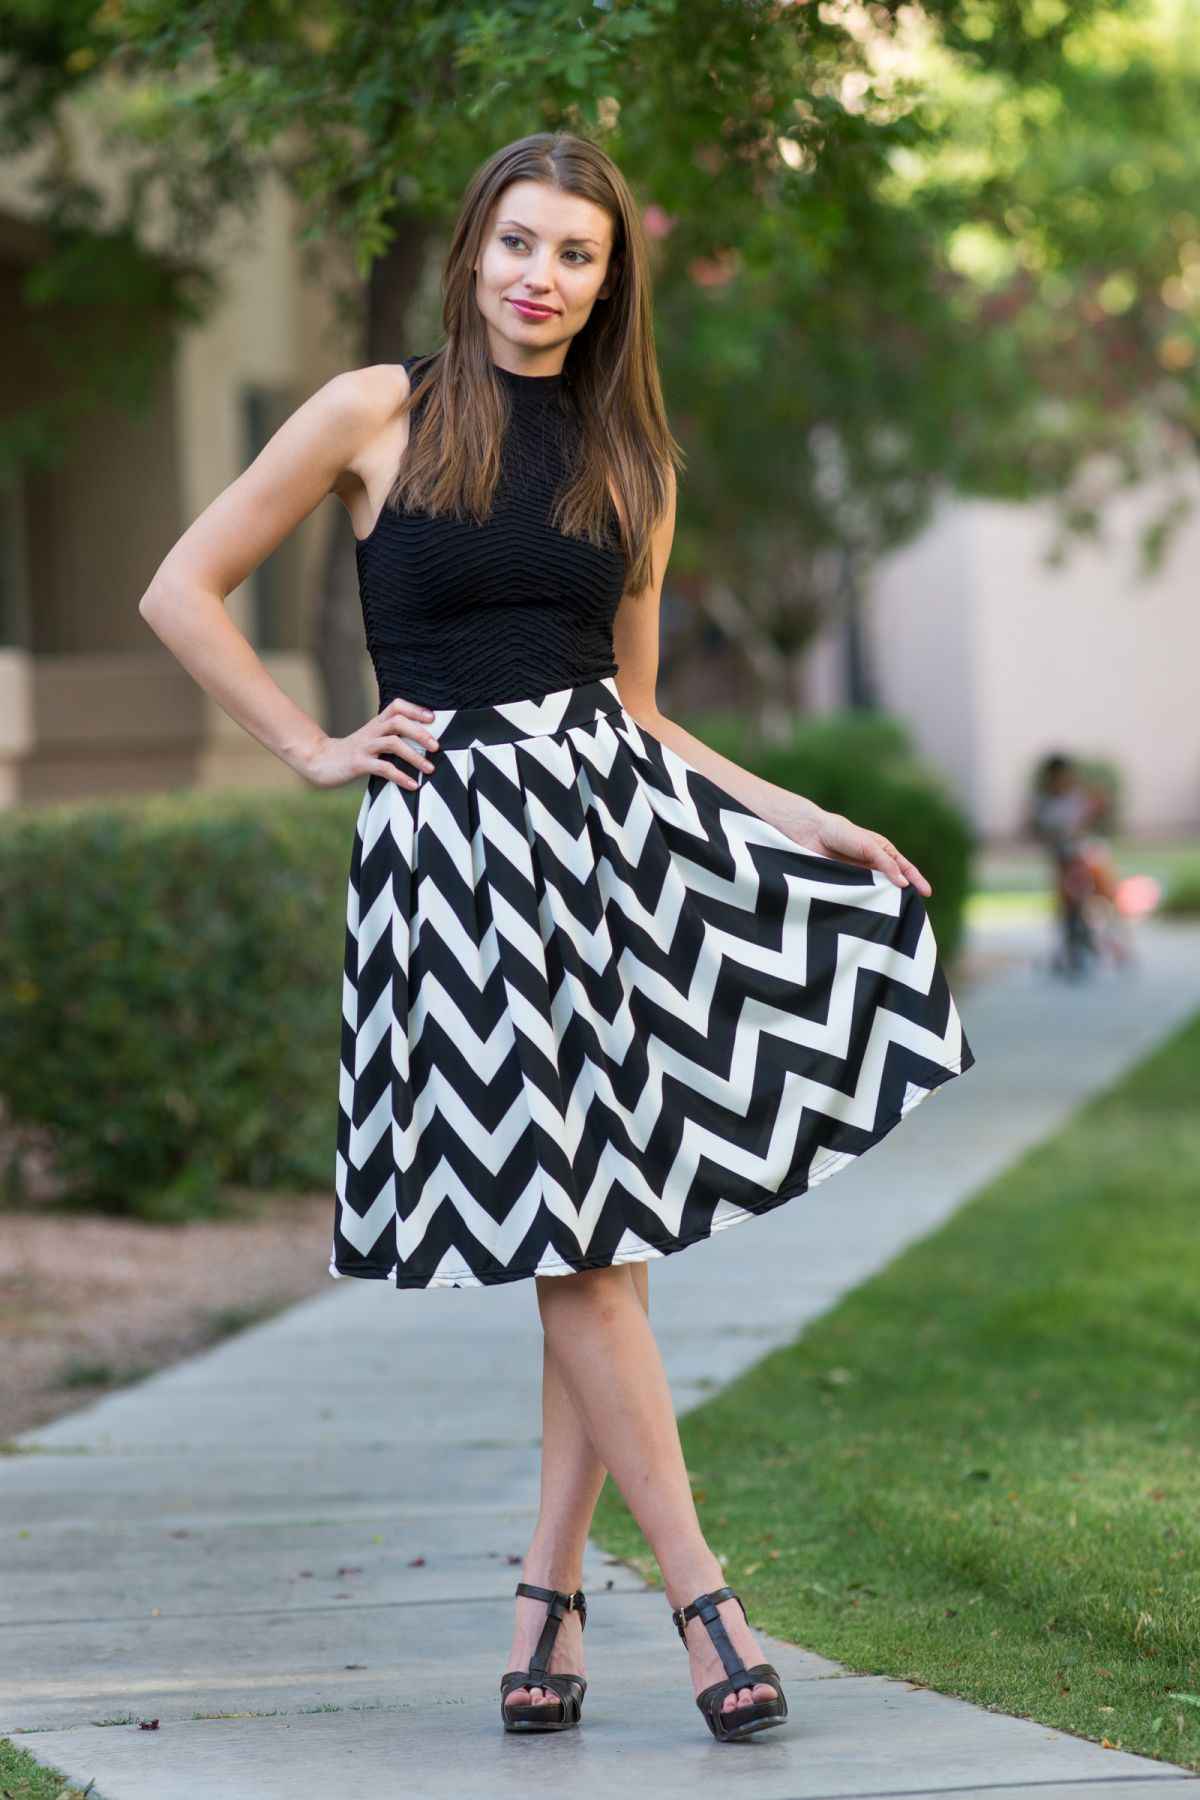 71375bf86 Chevron Skirt   Crop Top! - Only  14.99!